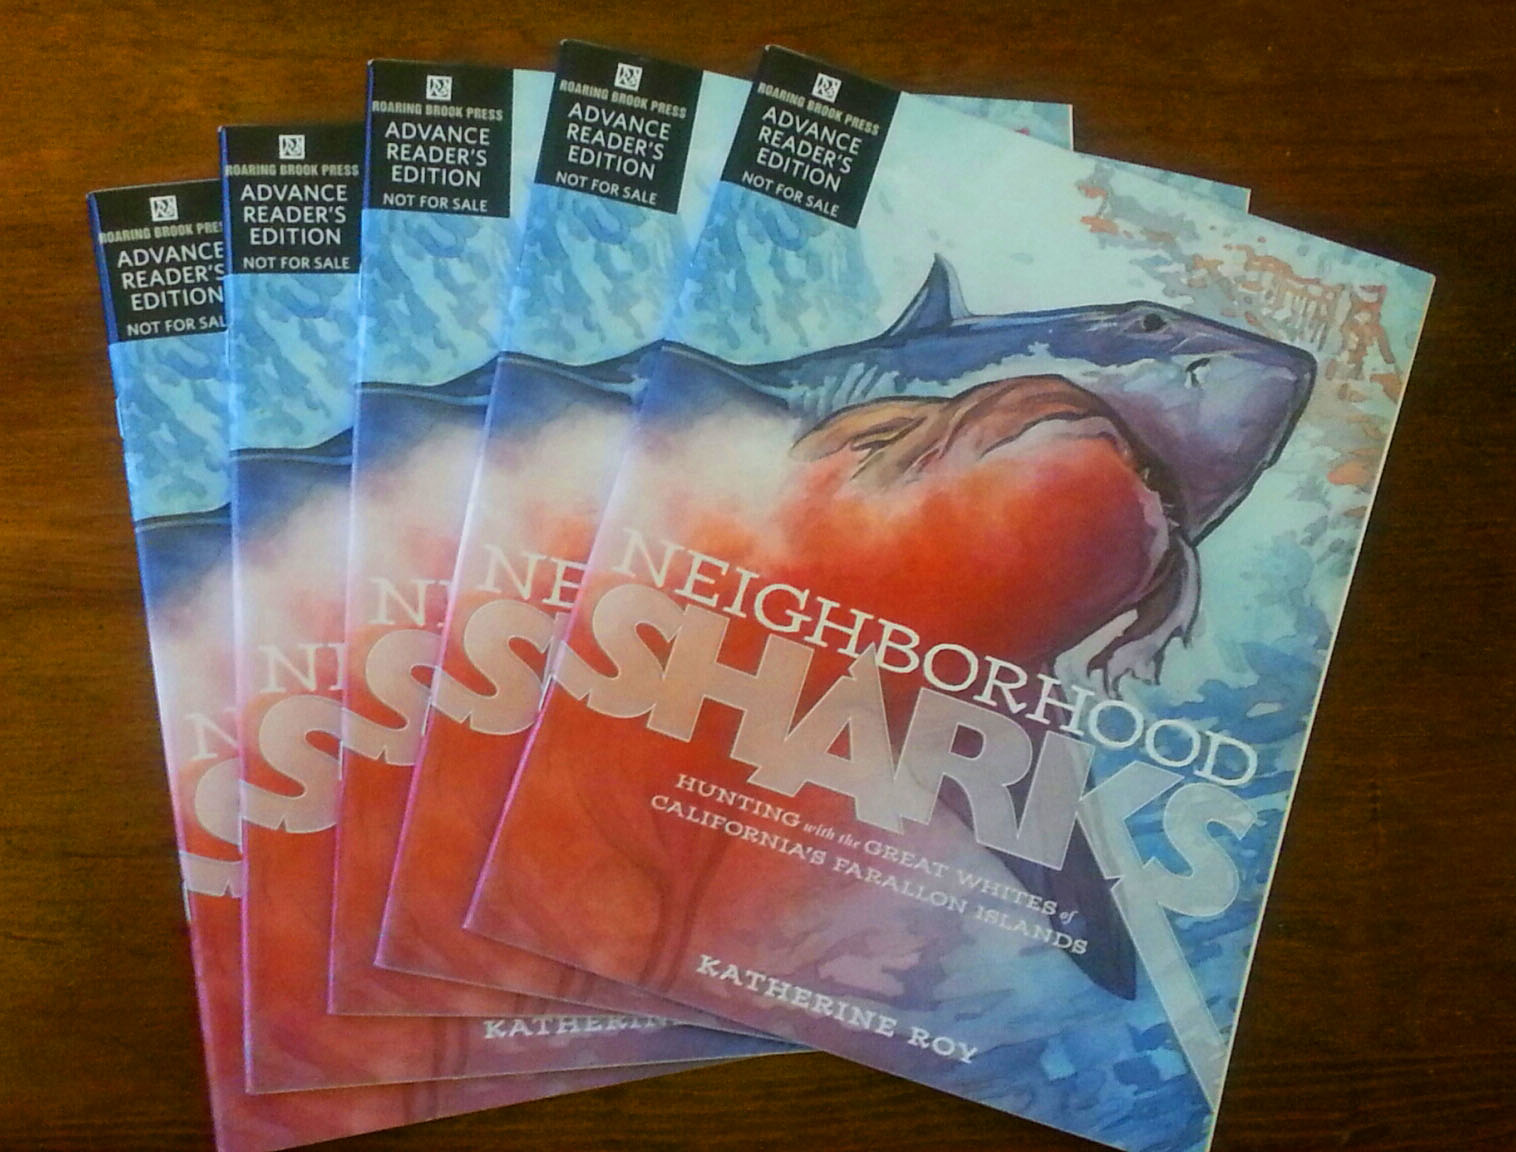 Roy's first book, Neighborhood Sharks, debuts this fall.